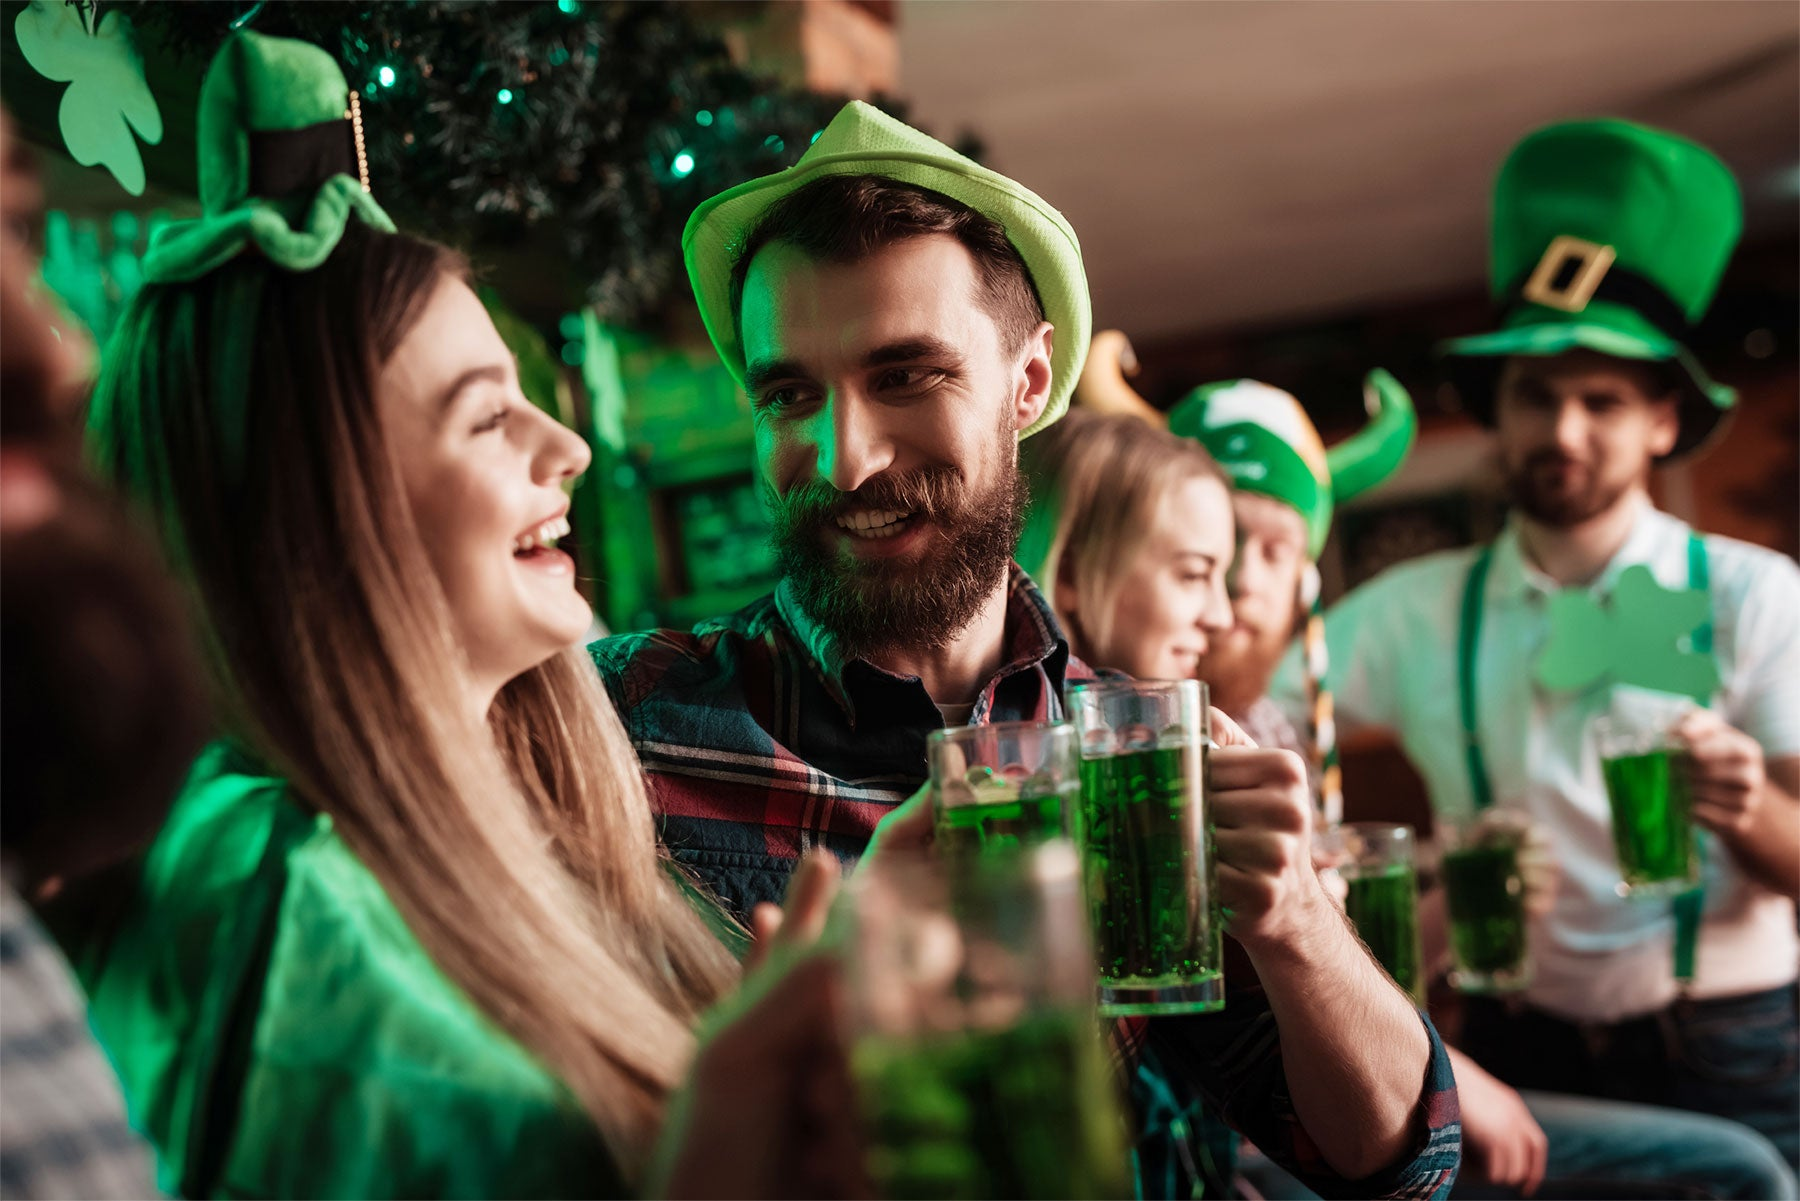 Getting Parade Ready - 5 Essential St Patrick's Day Accessories